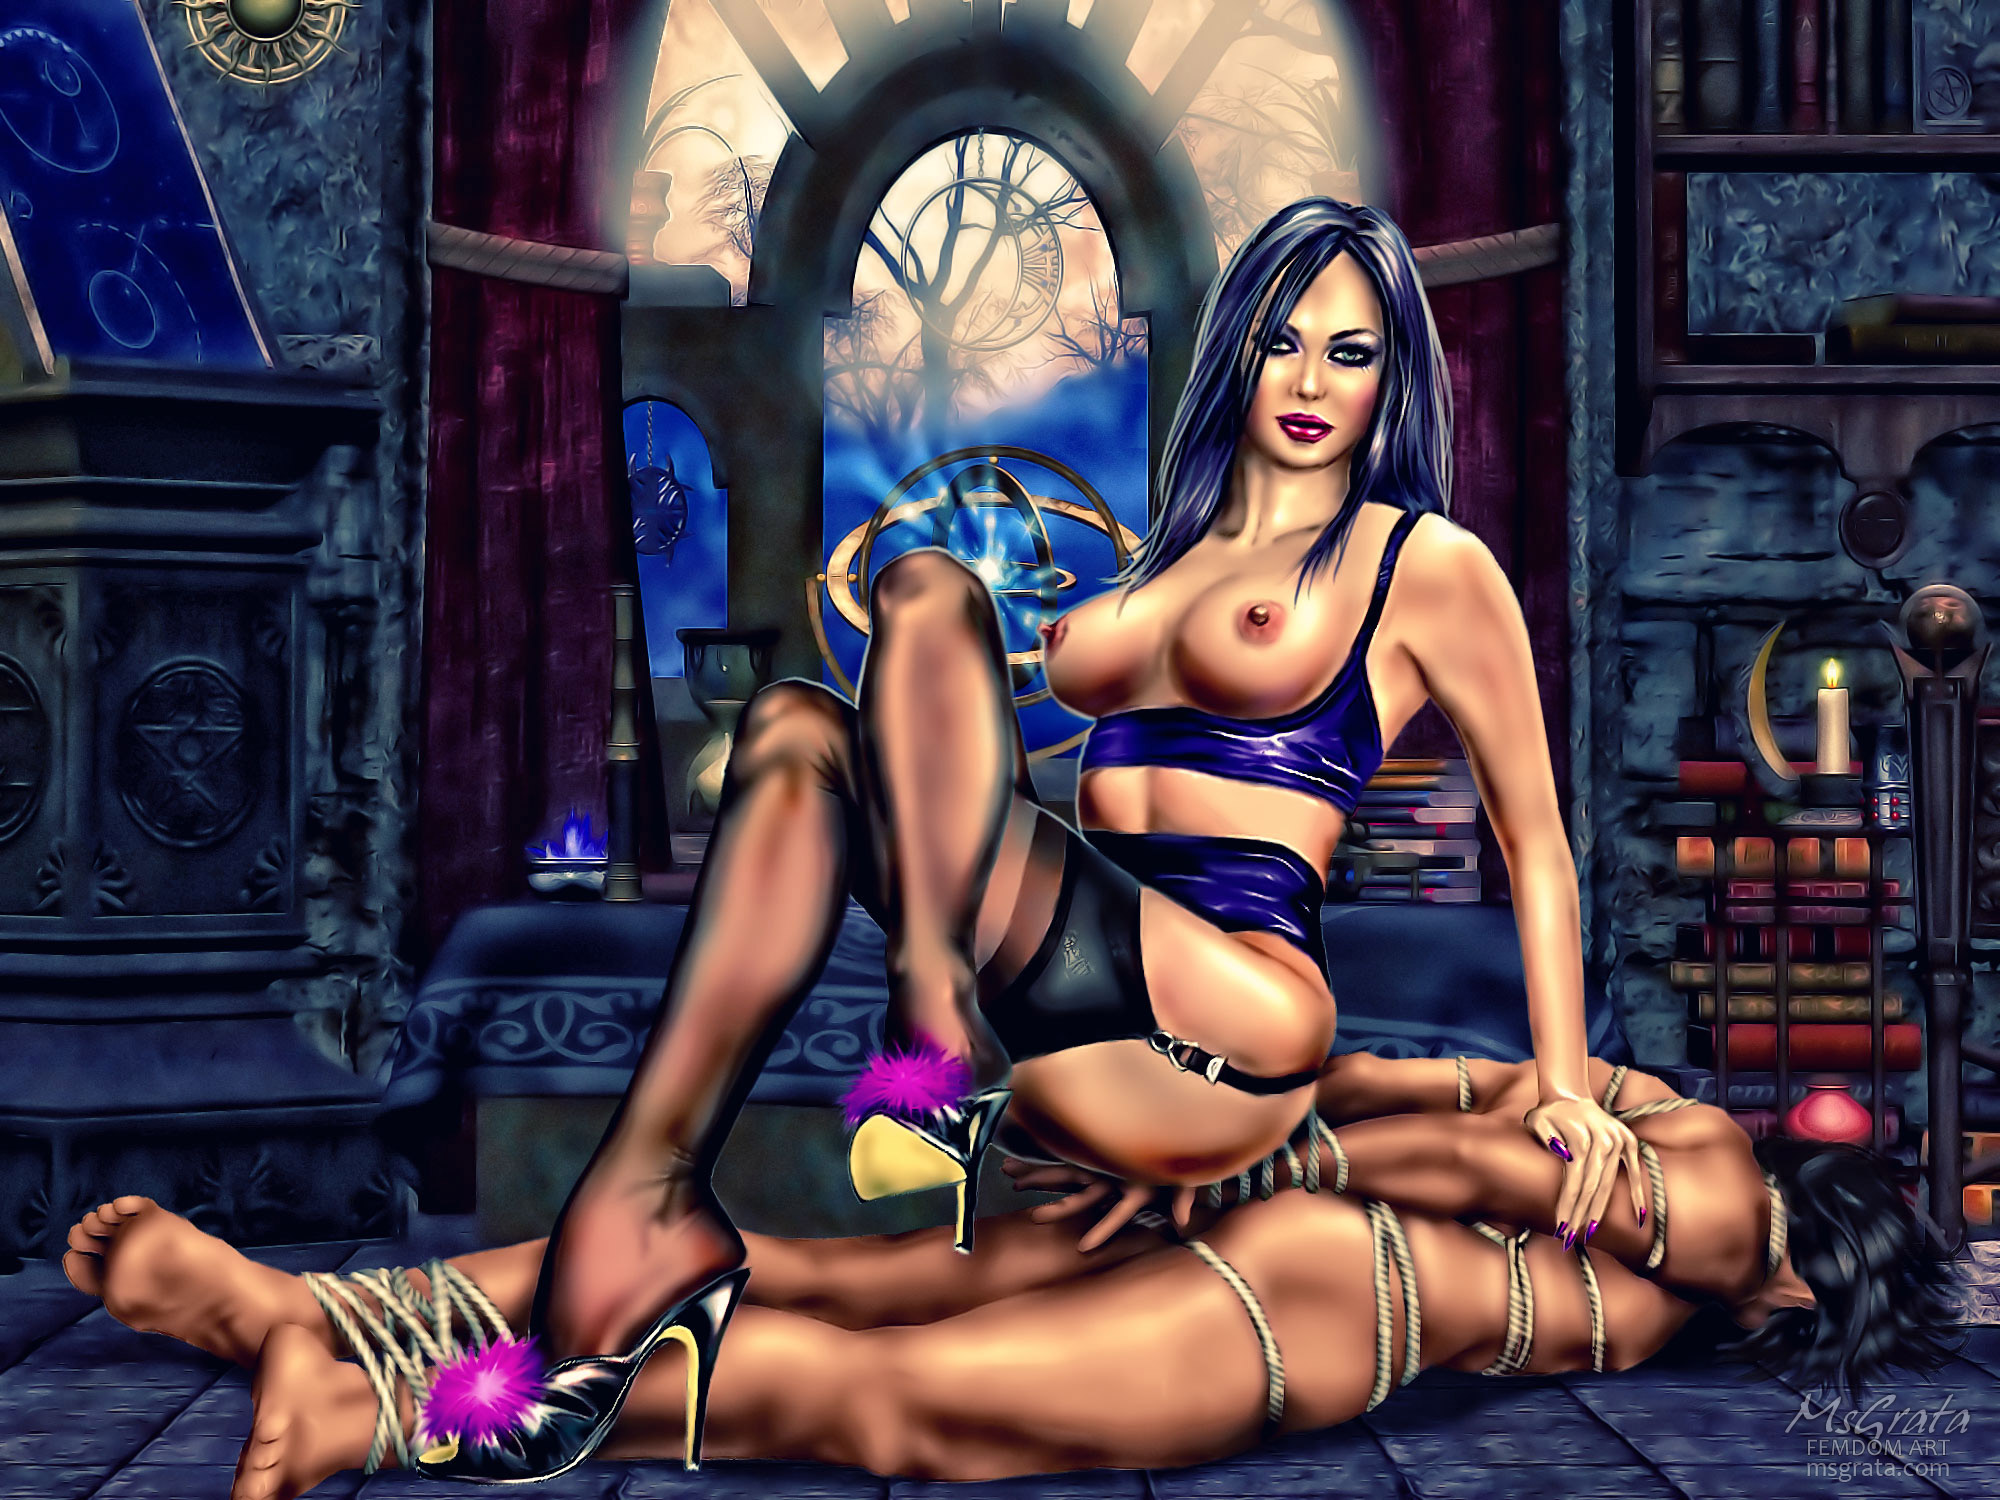 Busty domina in stockings and lingerie slave bondage Chamber Of Mysteries femdom art